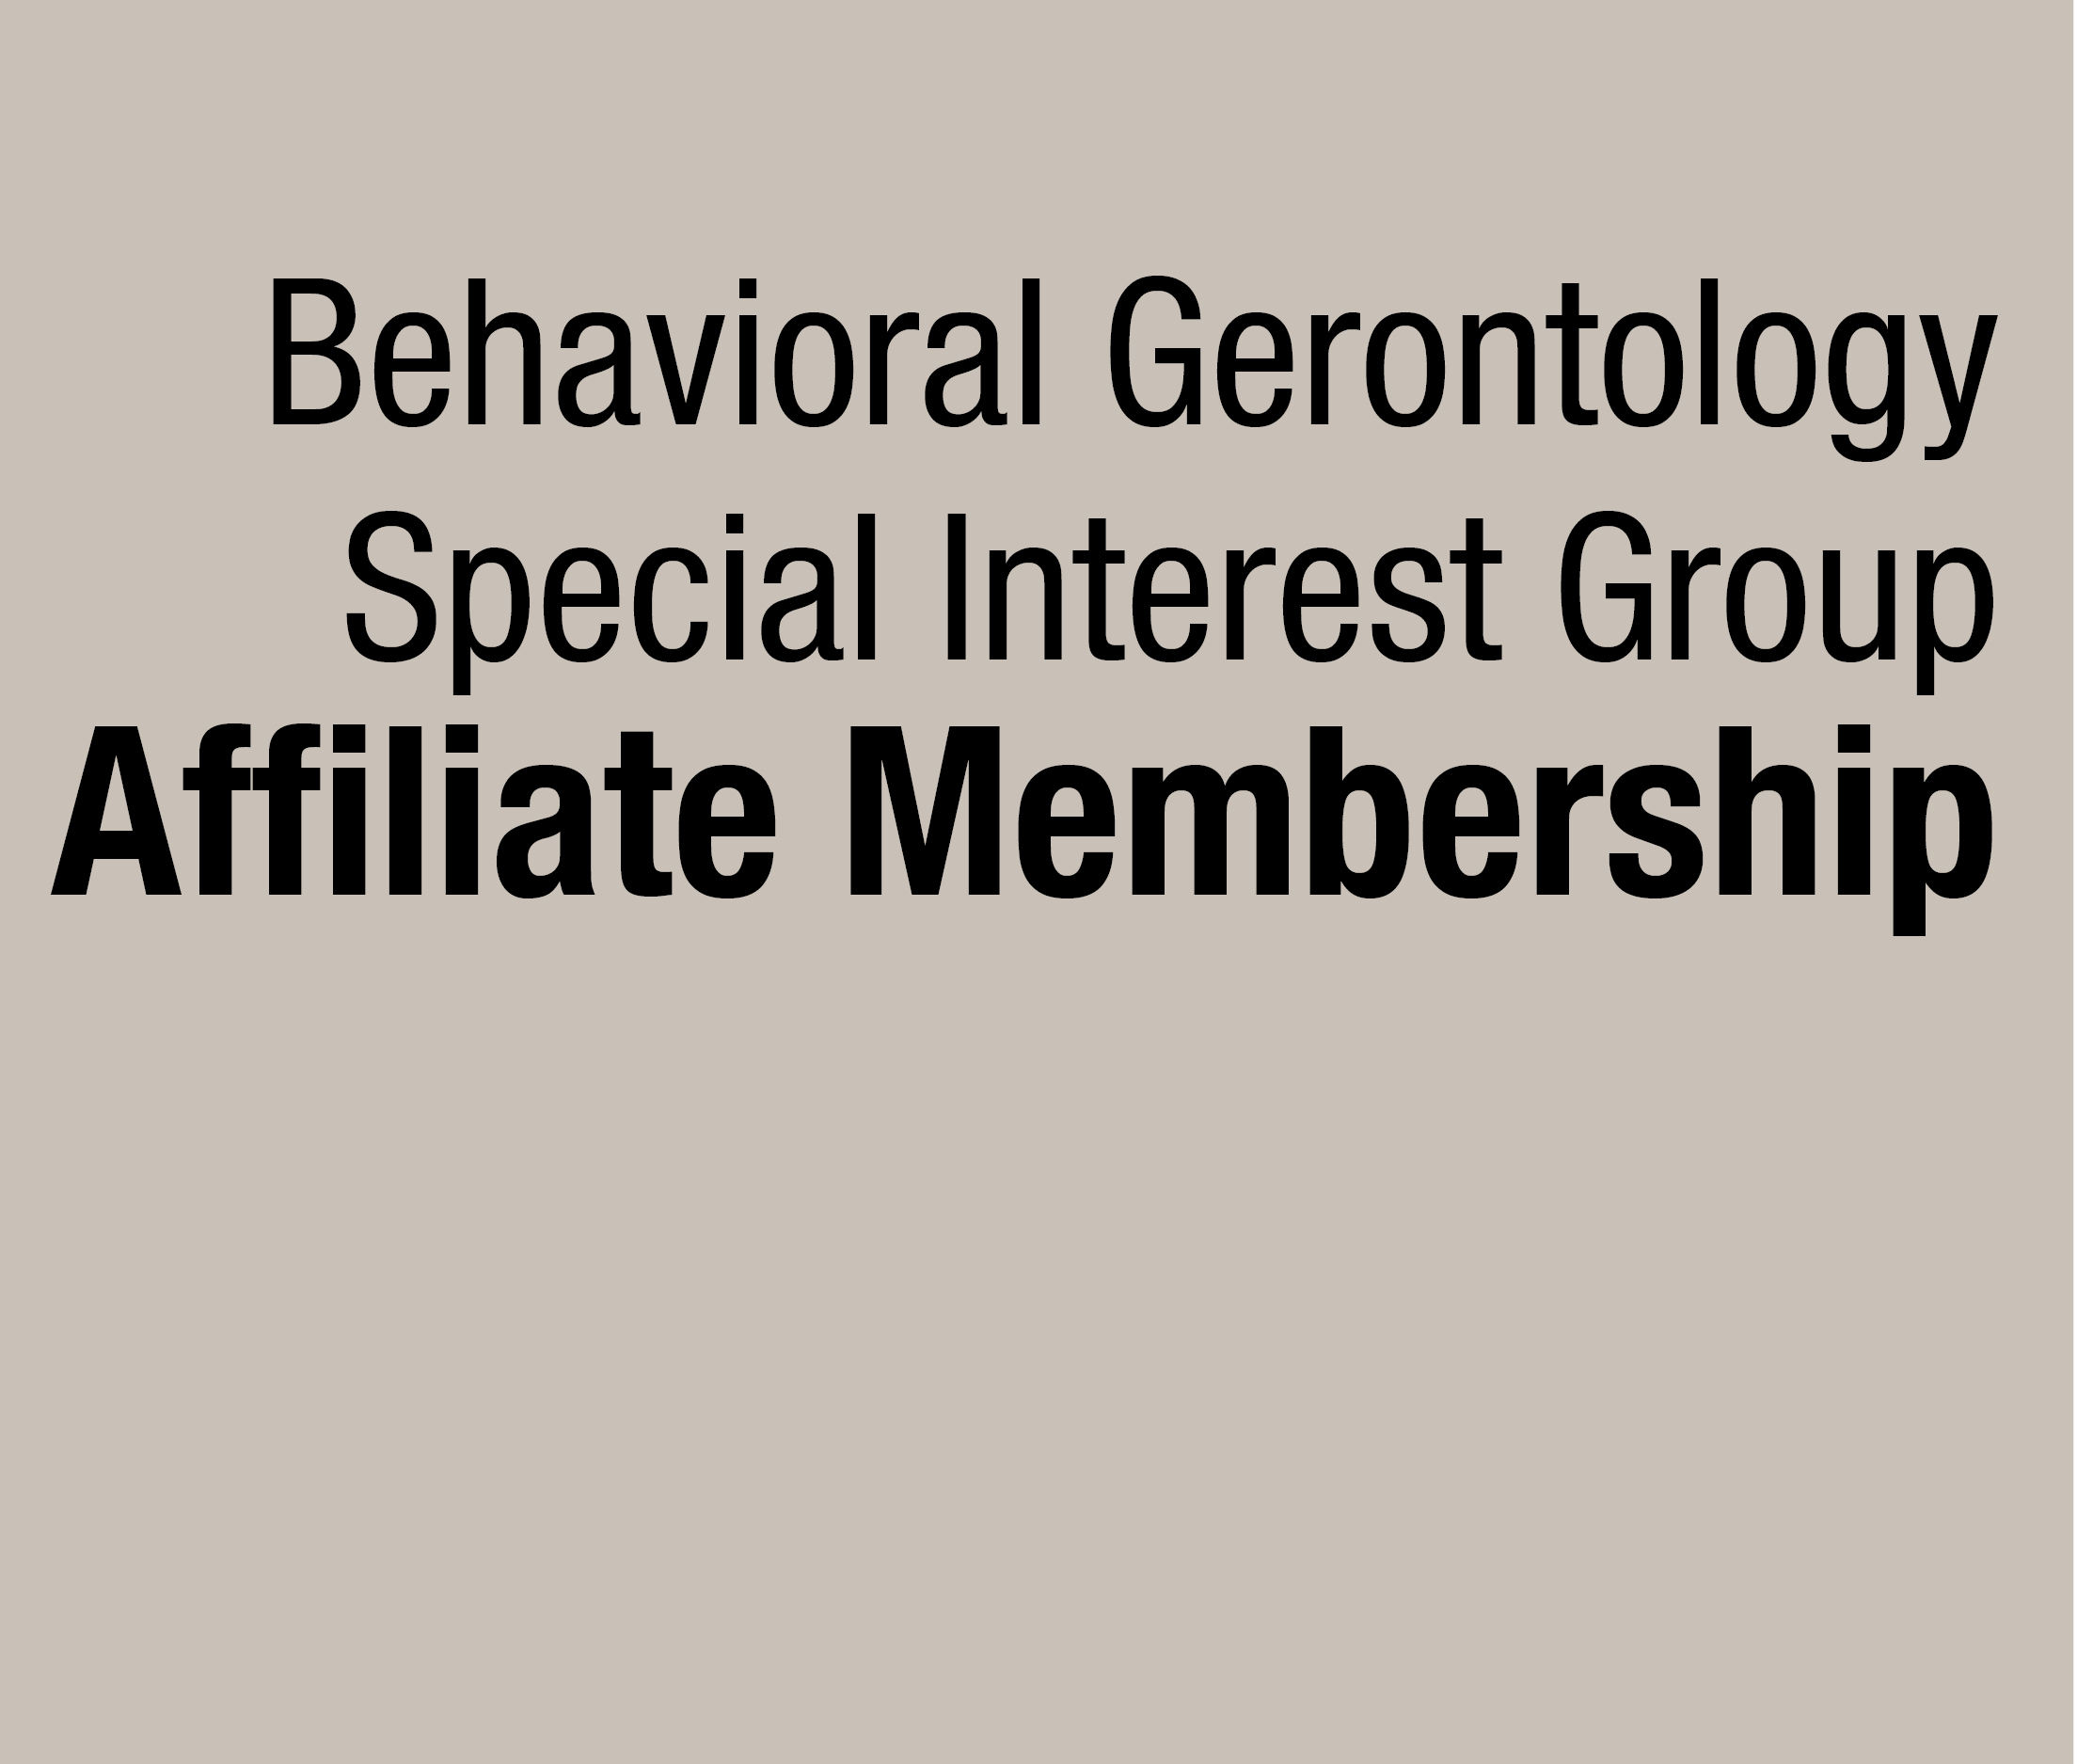 a square graphic representing Behavioral Gerontology SIG Affiliate Membership (9/1/21-8/31/22)